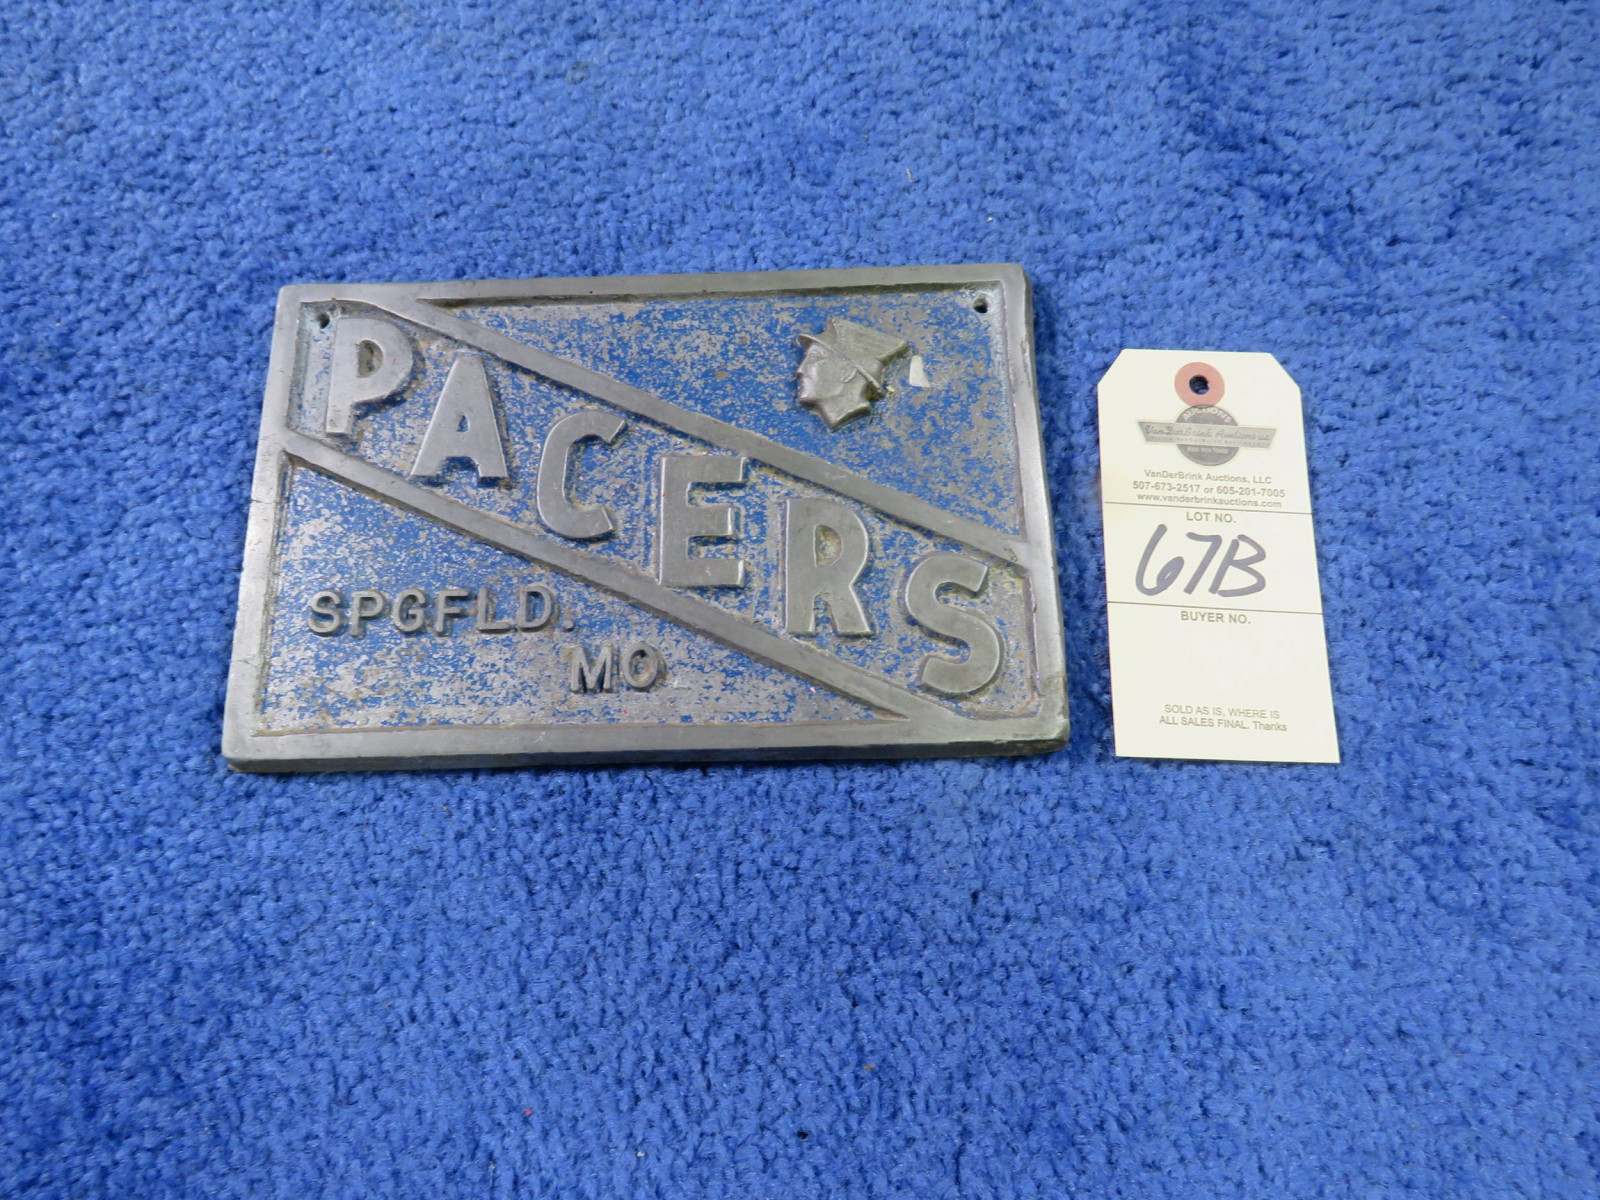 Pacers Vintage Vehicle Club Plate from Springfield, MO- Pot Metal - Image 1